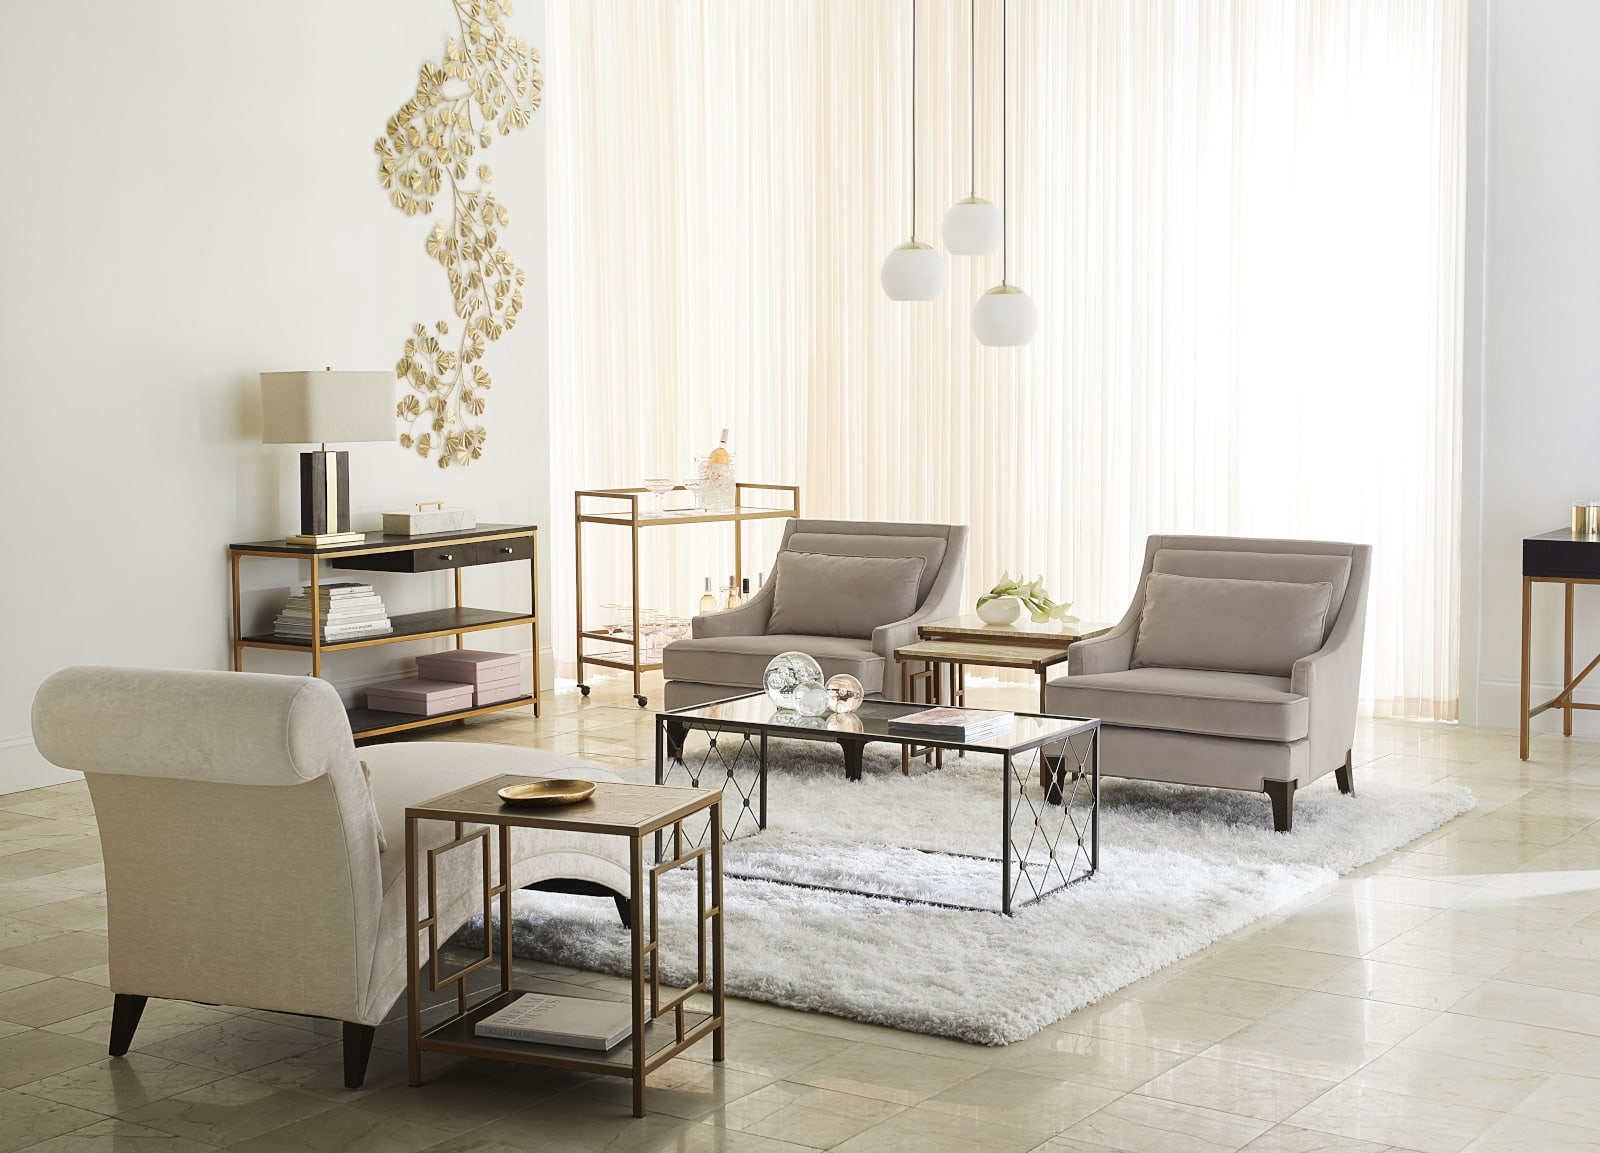 Modern living room with white, gold and grey furniture